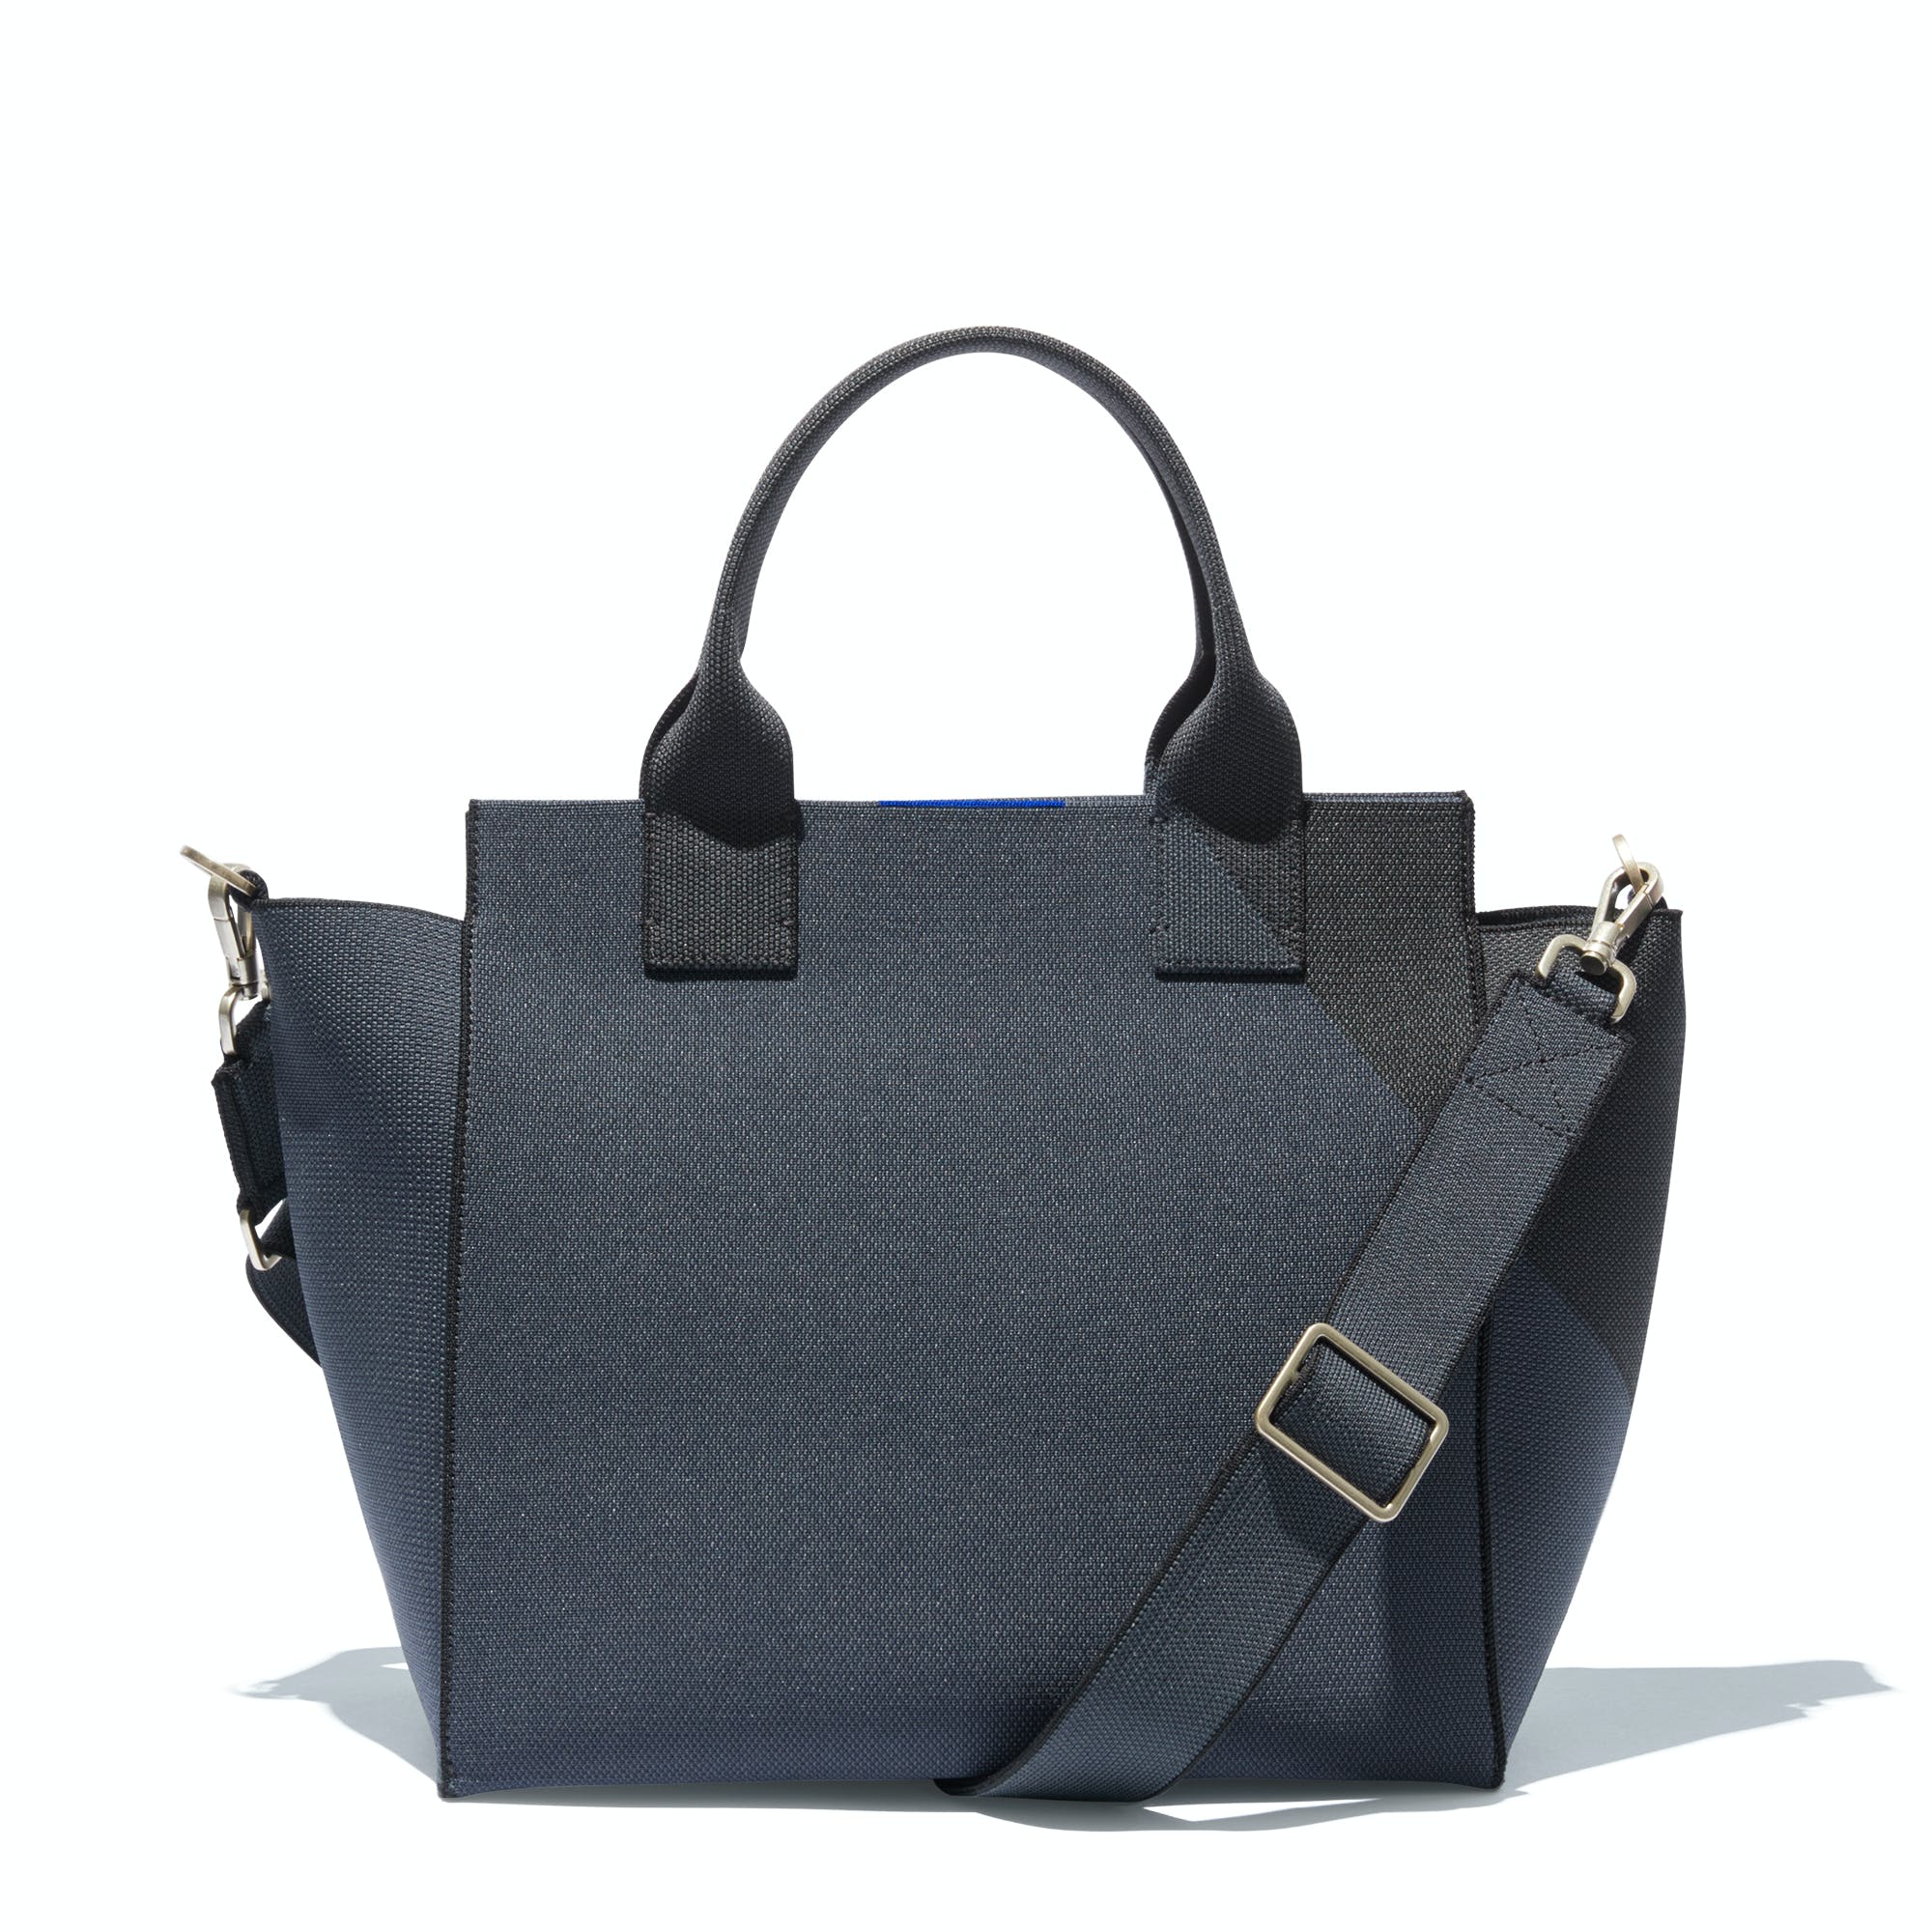 The Handbag in Midnight Navy shown from the front.